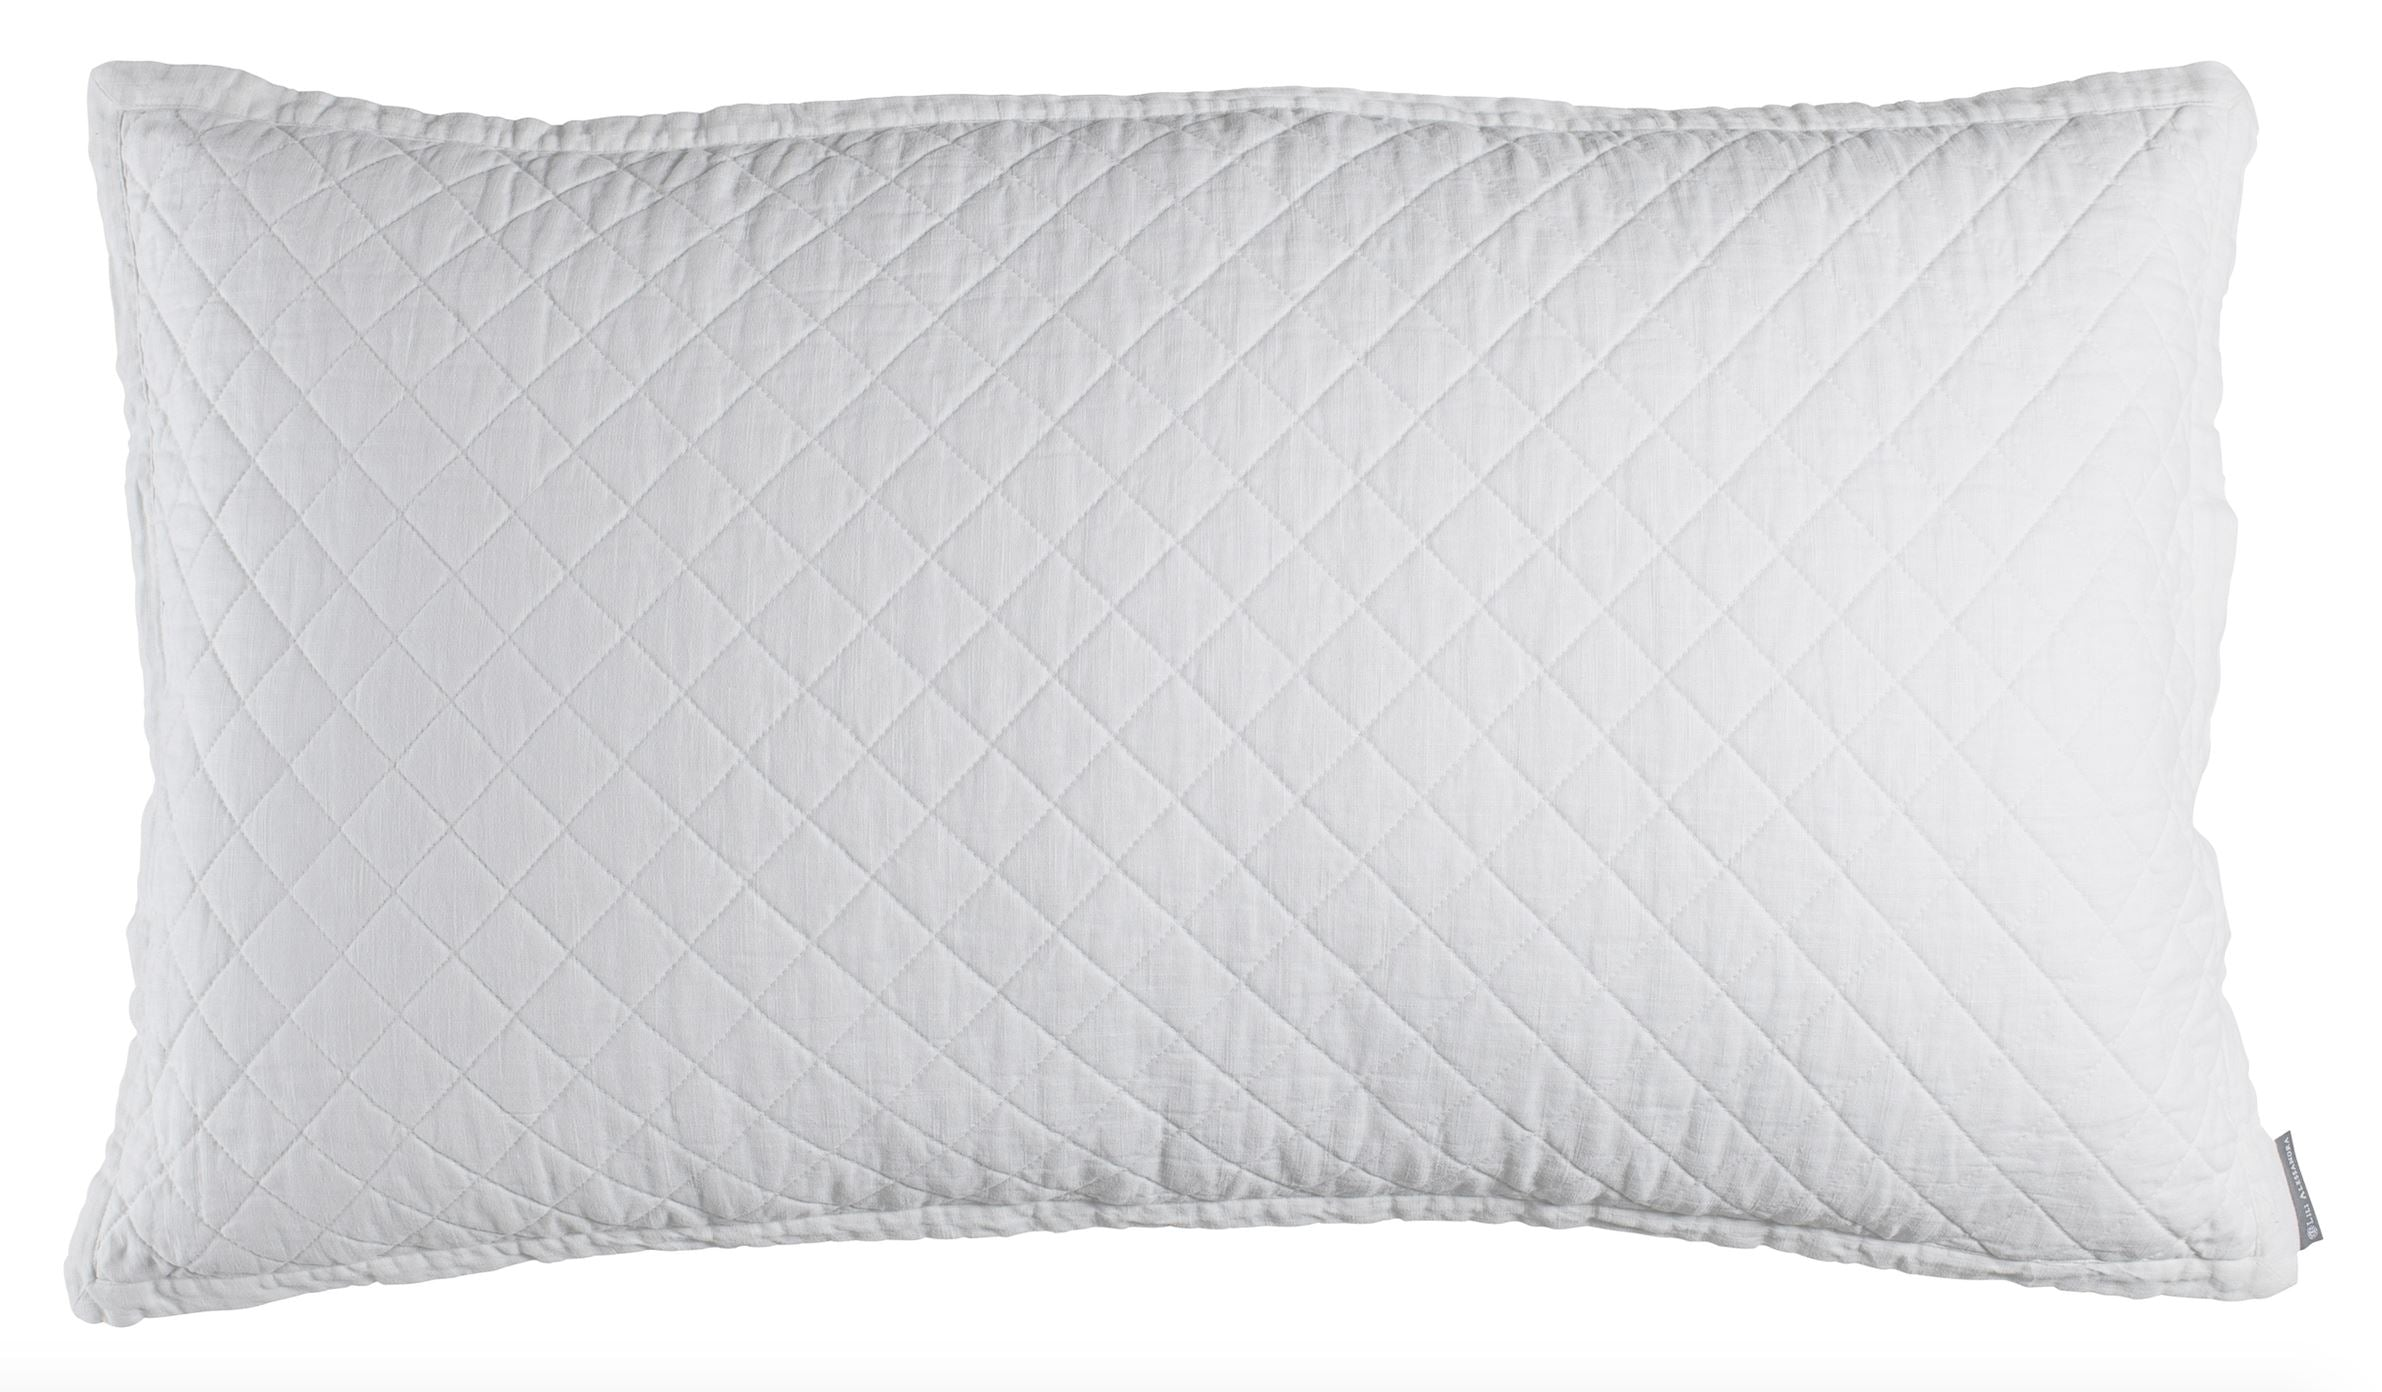 Lili Alessandra Emily White King Pillow